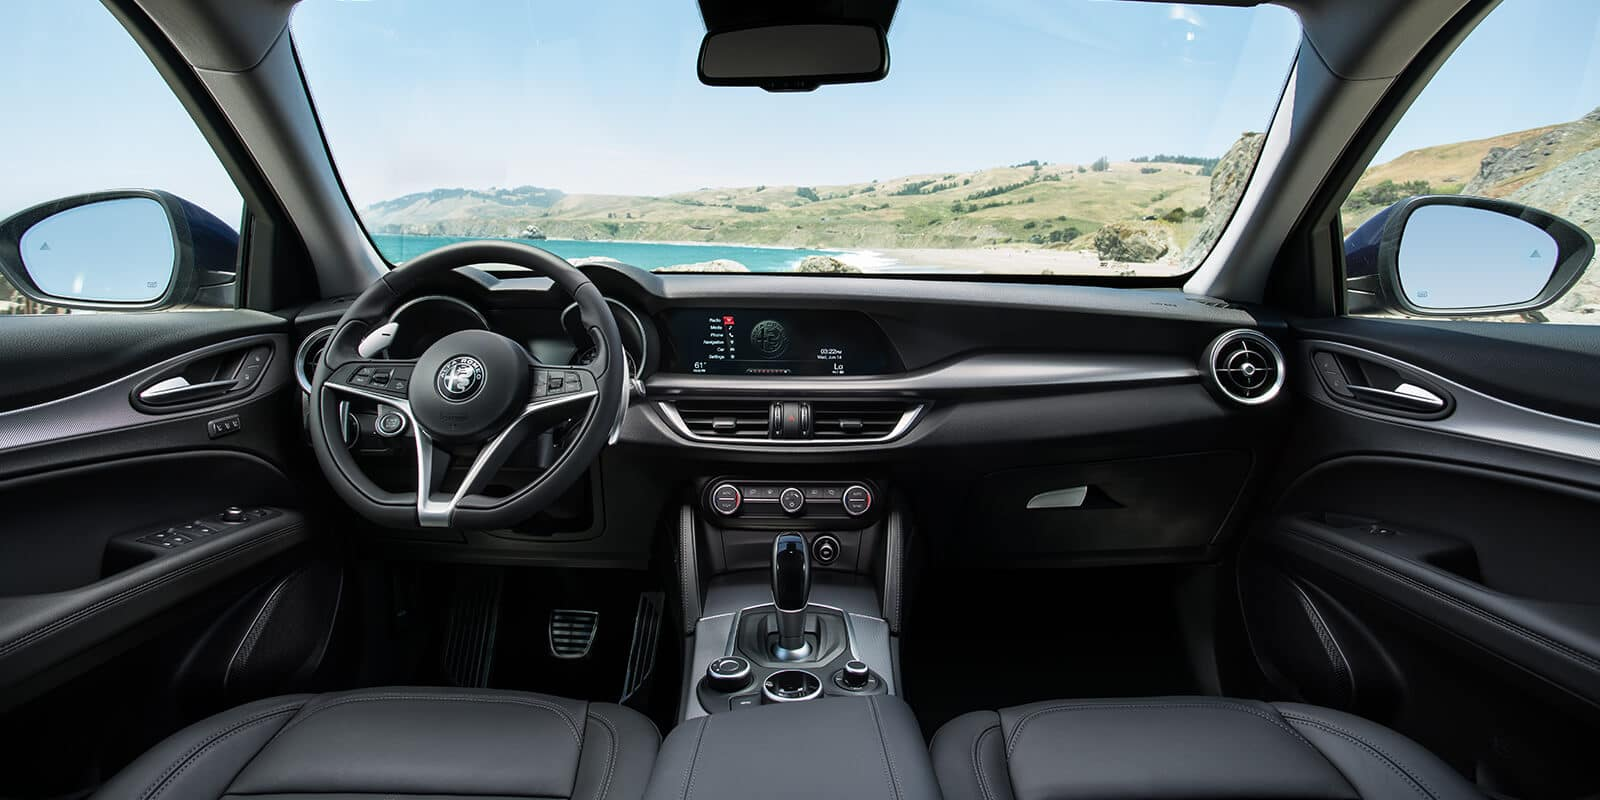 Cars With Heated Seats And Steering Wheels